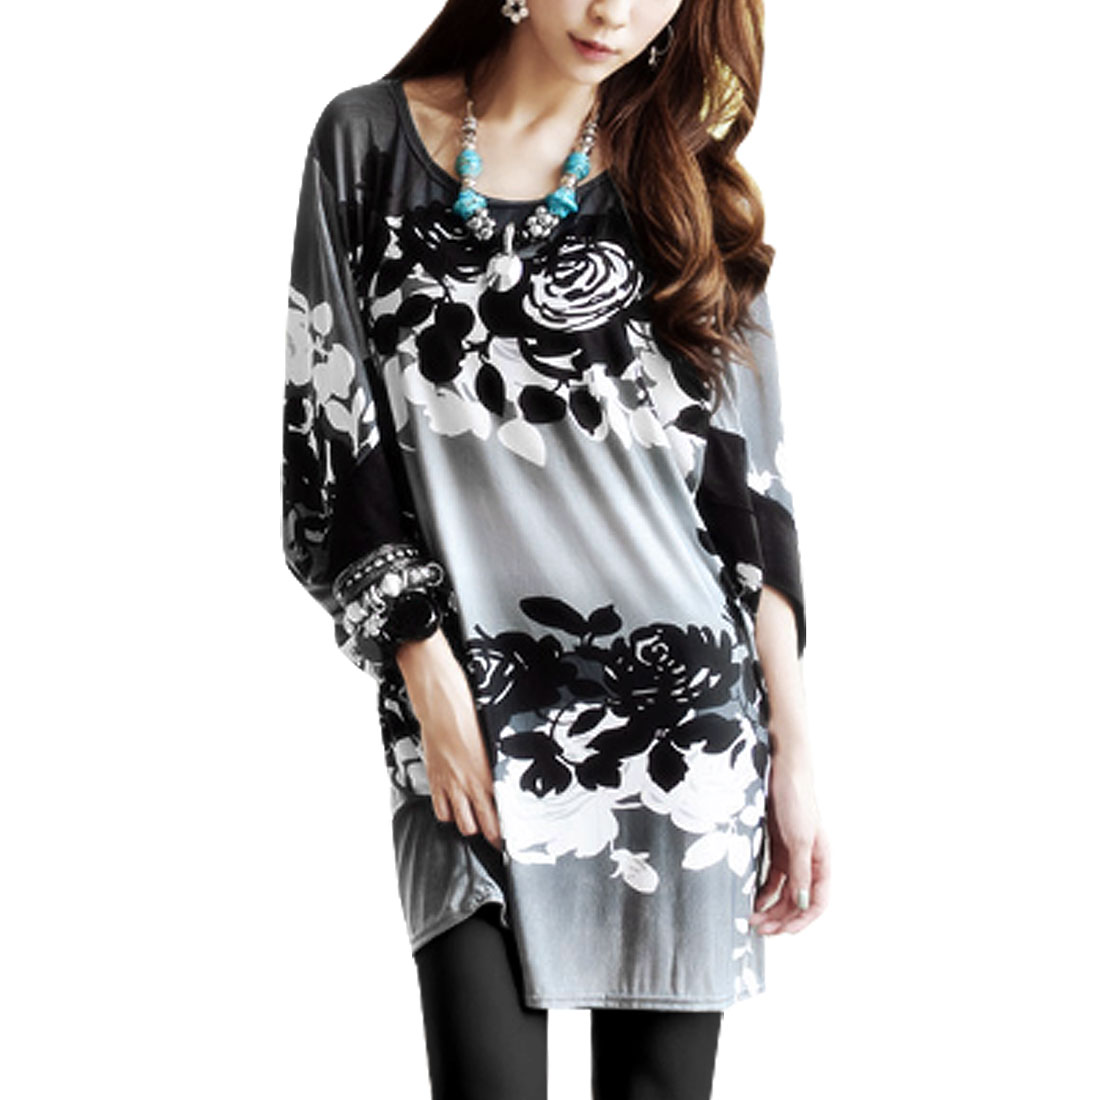 Black Rose Pattern Gray Scoop Neck 3/4 Sleeve Tunic Blouse S for Woman